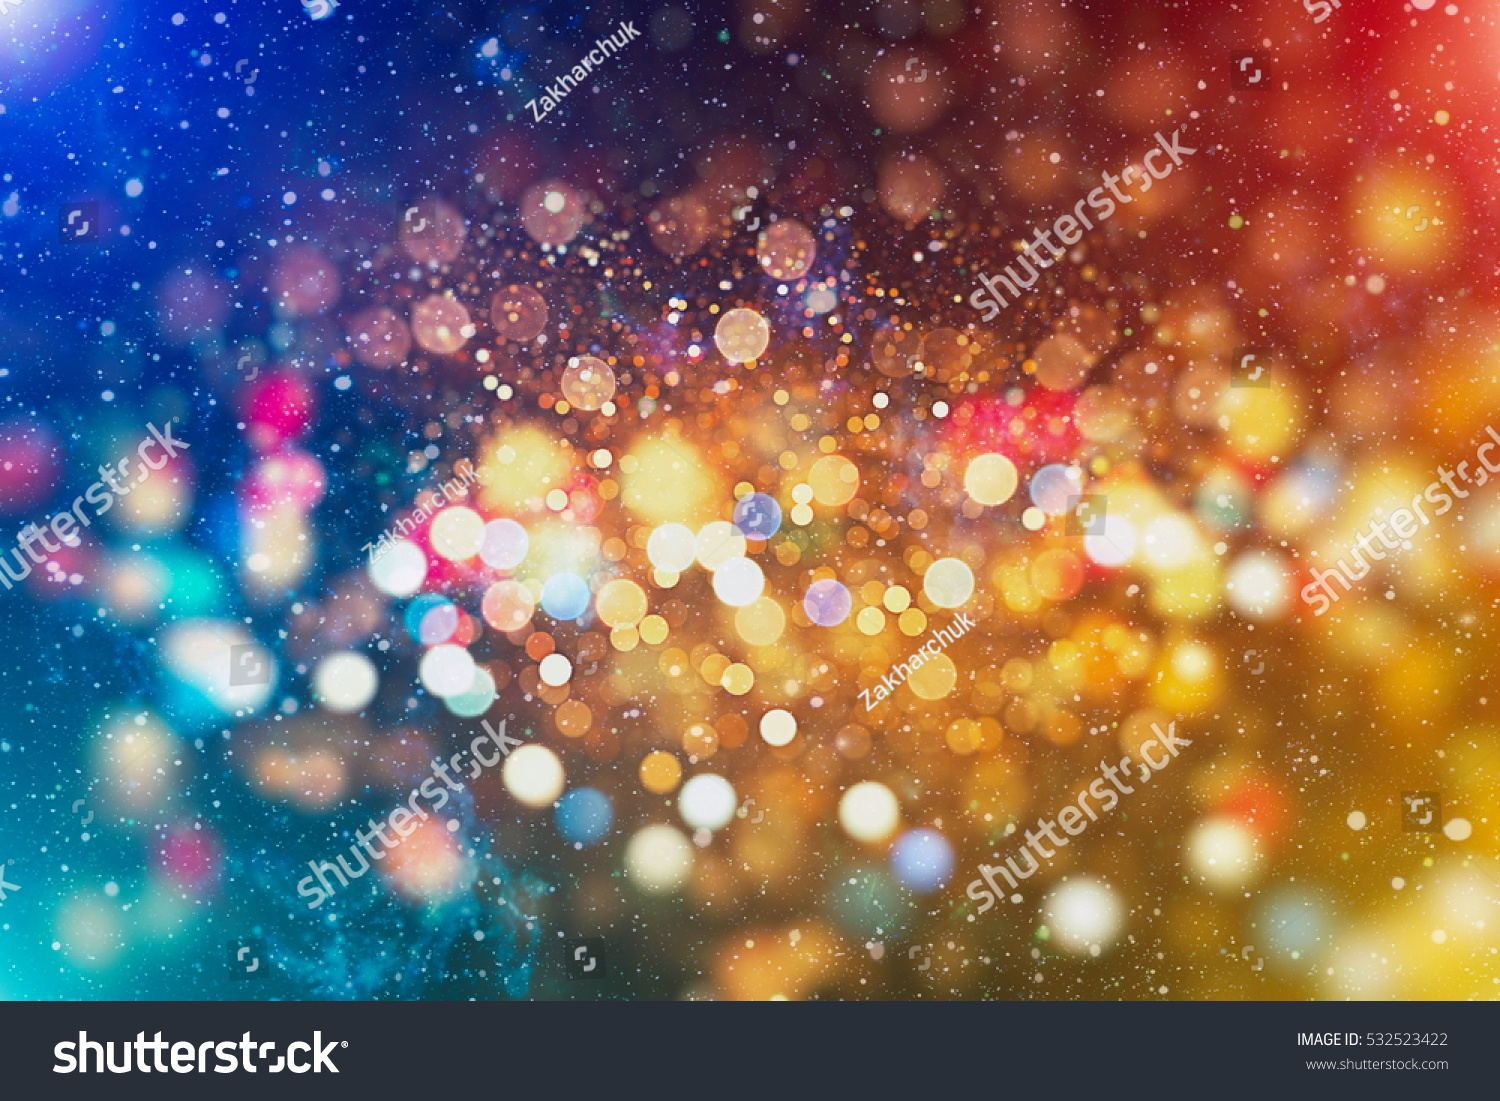 abstract blurred of blue and silver glittering shine bulbs lights background:blur of Christmas wallpaper decorations concept.xmas holiday festival backdrop:sparkle circle lit celebrations display .